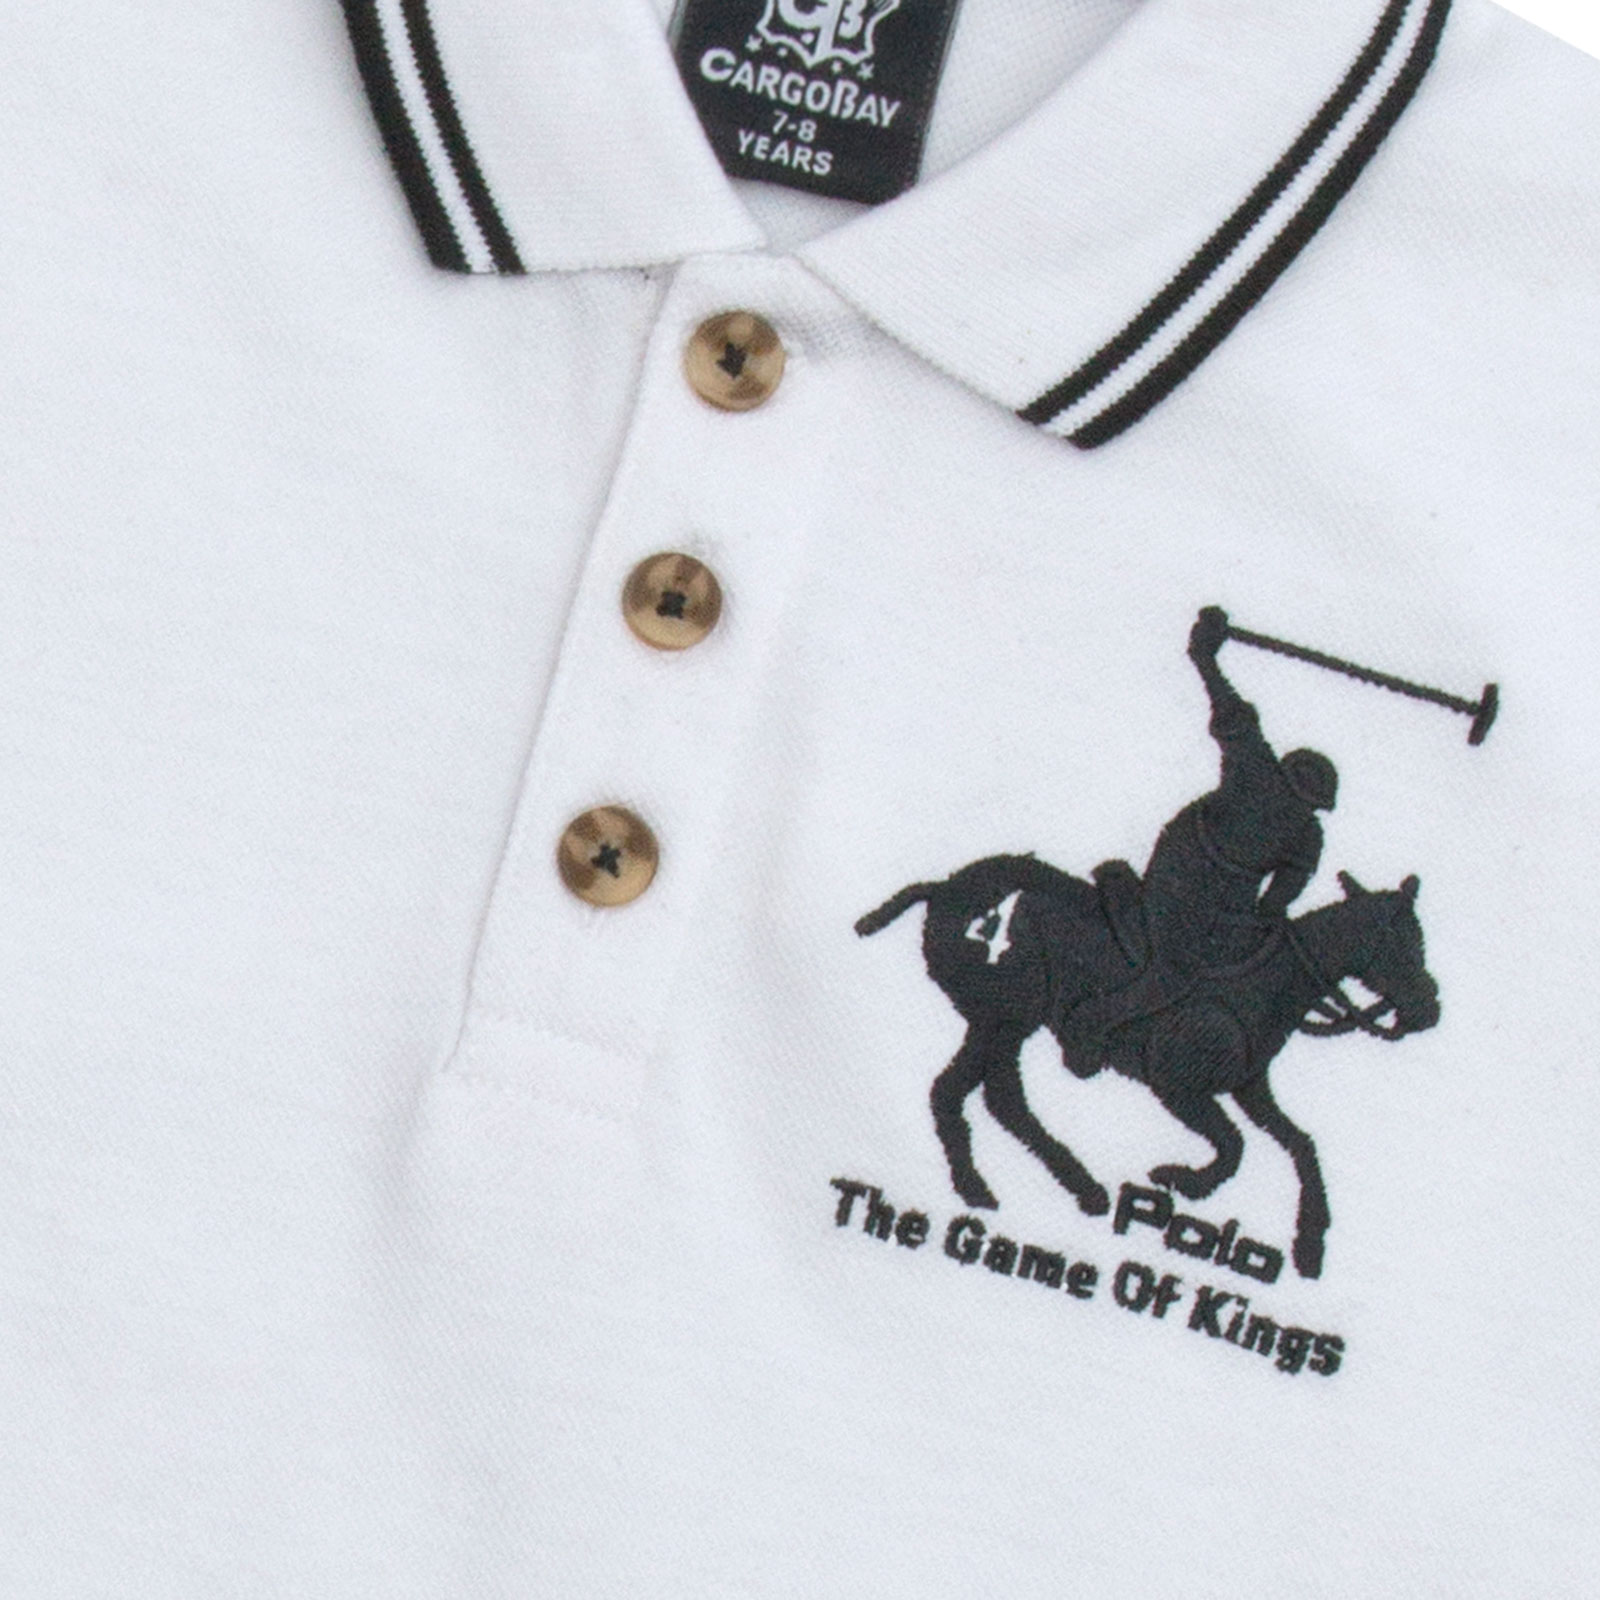 Boys-T-Shirt-Horse-Embroidery-Polo-Cotton-Top-Age-2-3-4-5-6-7-8-9-10-11-12-13-Yr thumbnail 29